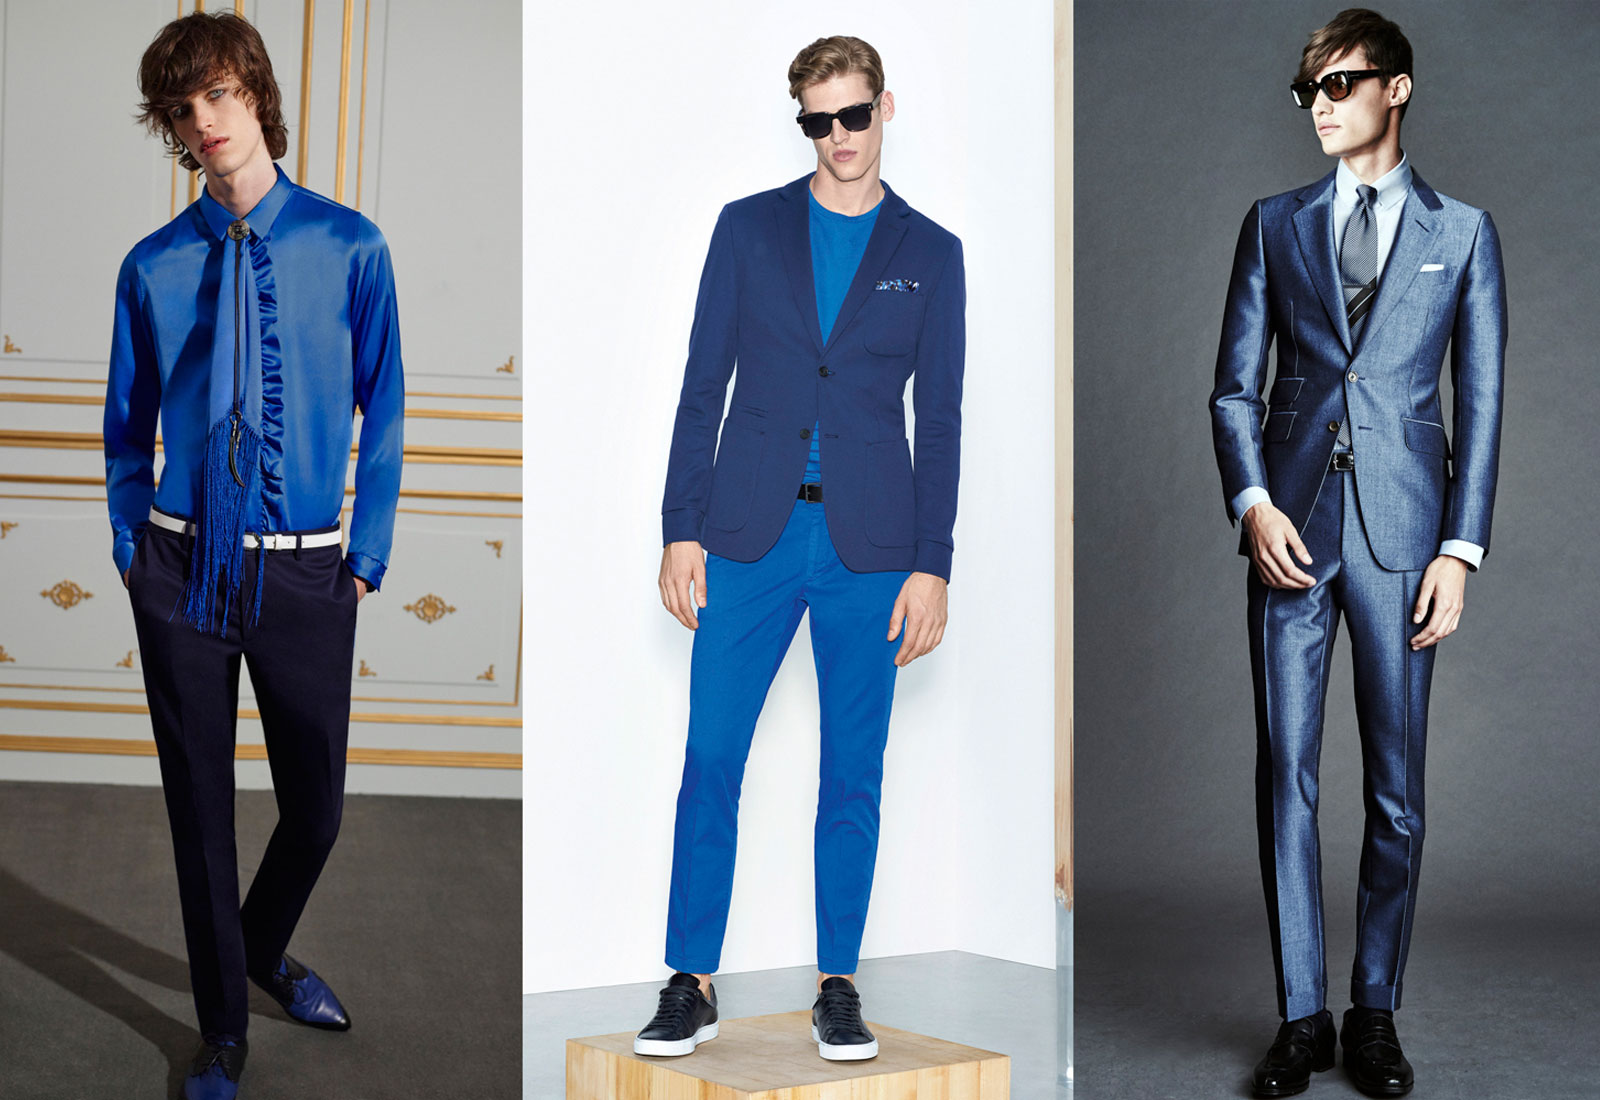 spring and summer men's fashion 2016 blue suits from roberto cavalli hugo boss and tom ford 1600 x 1100